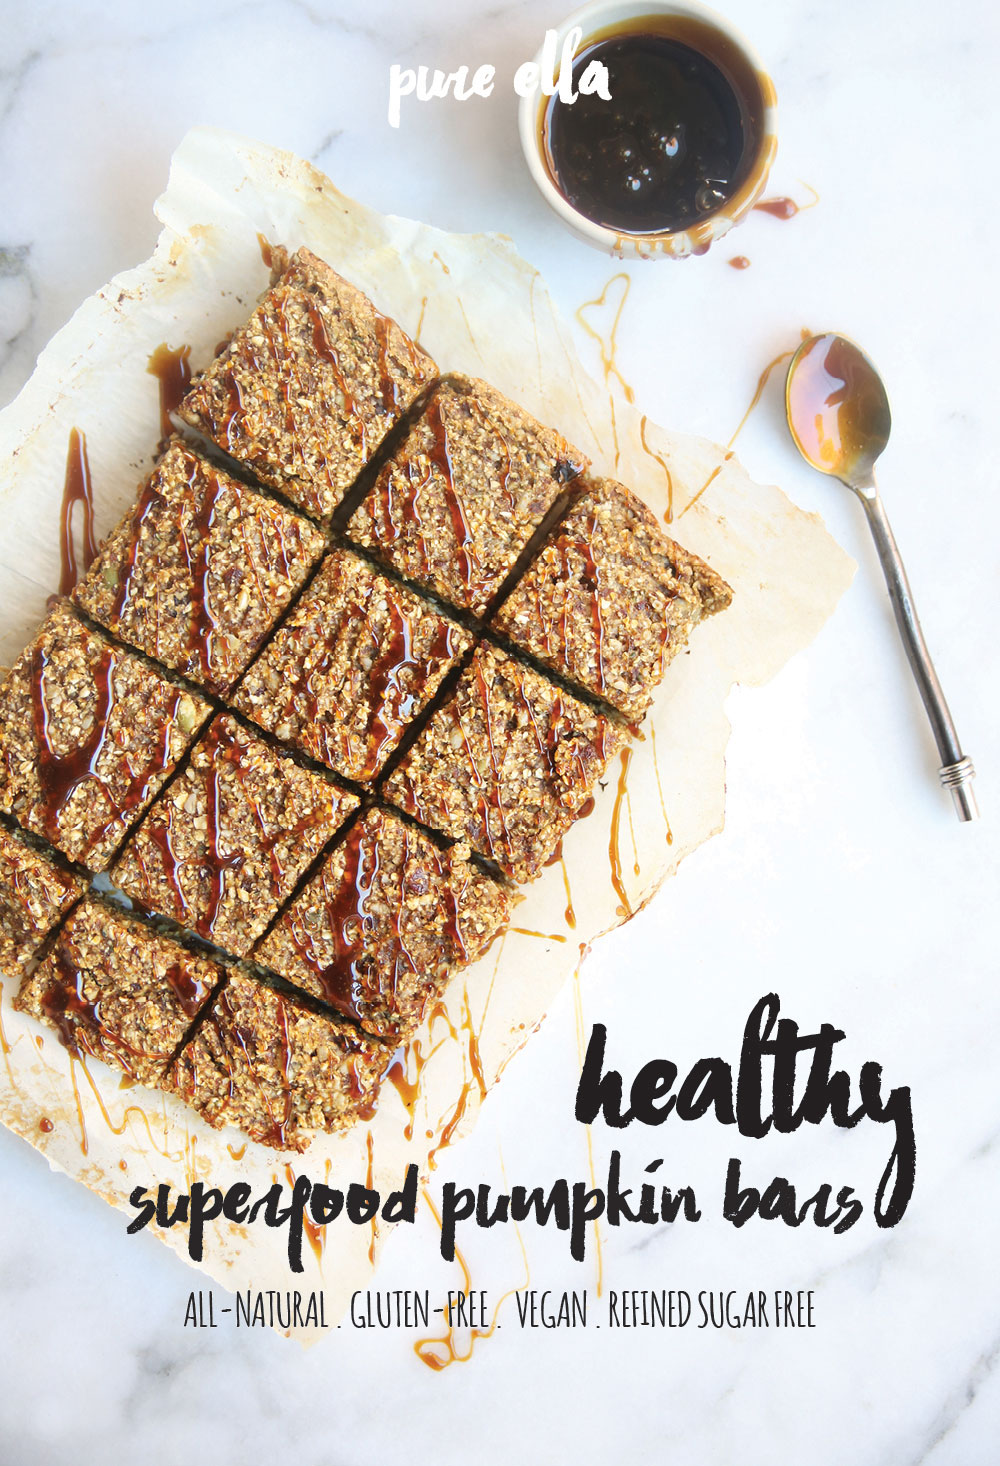 pumpkin-breakfast-bars-deliciously-ella-pure-ella-leche6